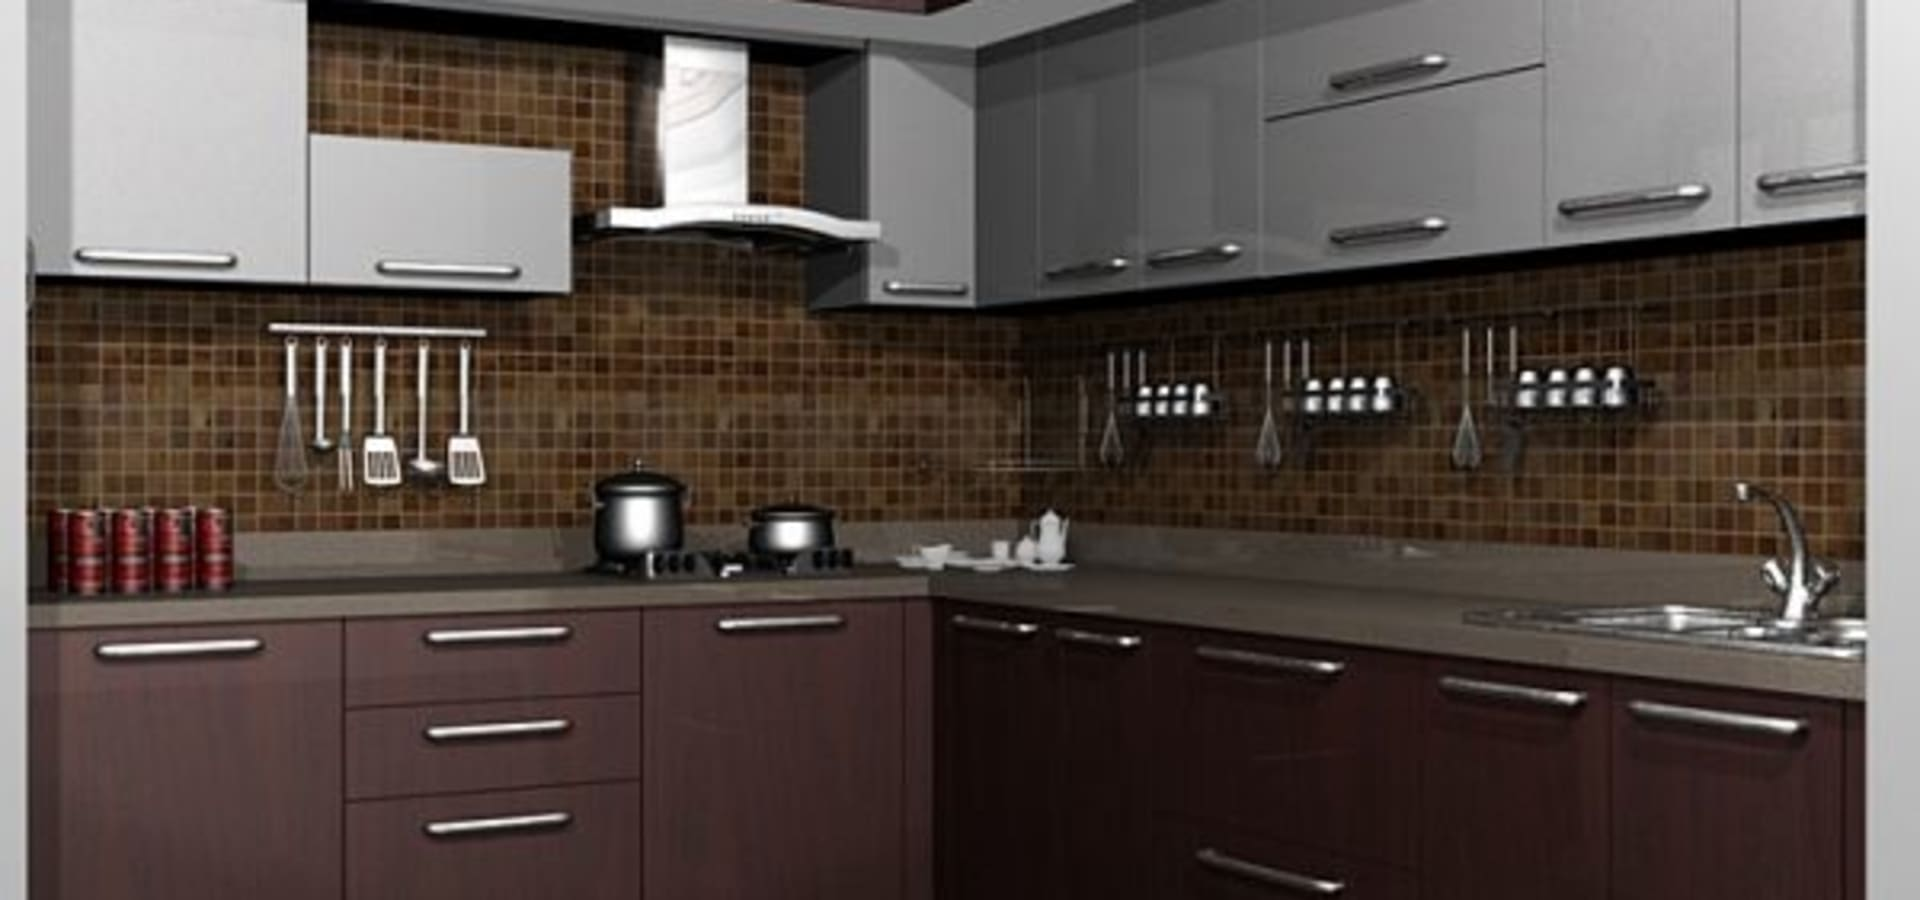 italian kitchen design hyderabad woodz modular designers and interiors furniture 787